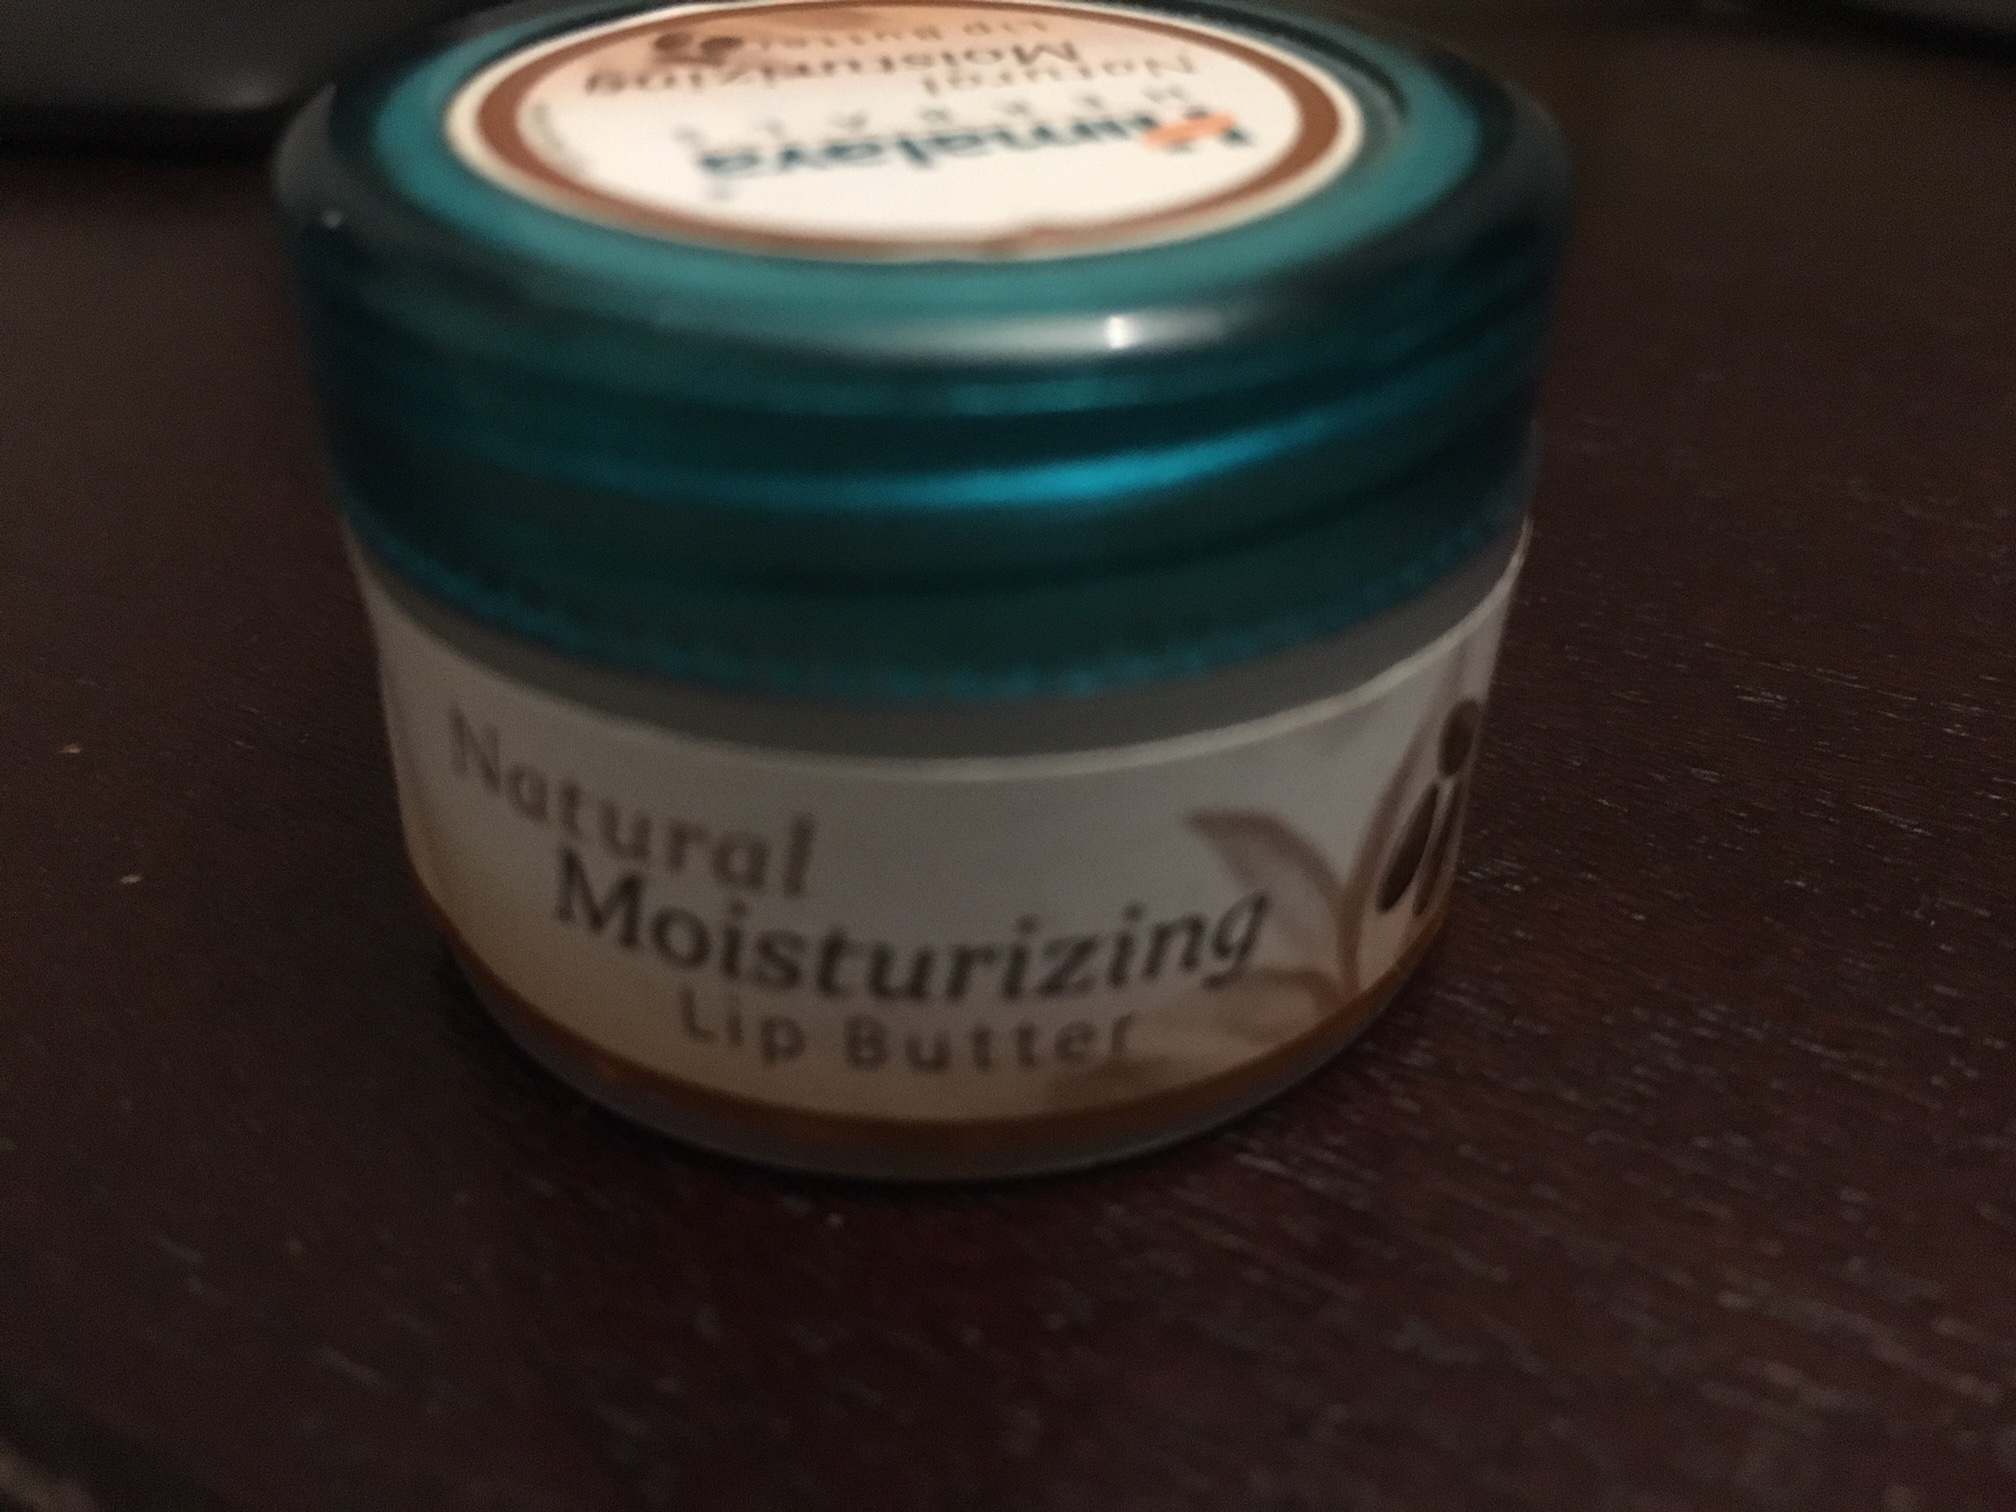 Himalaya Herbals Natural Moisturizing Lip Butter-Amazing for the lips-By prernakapur